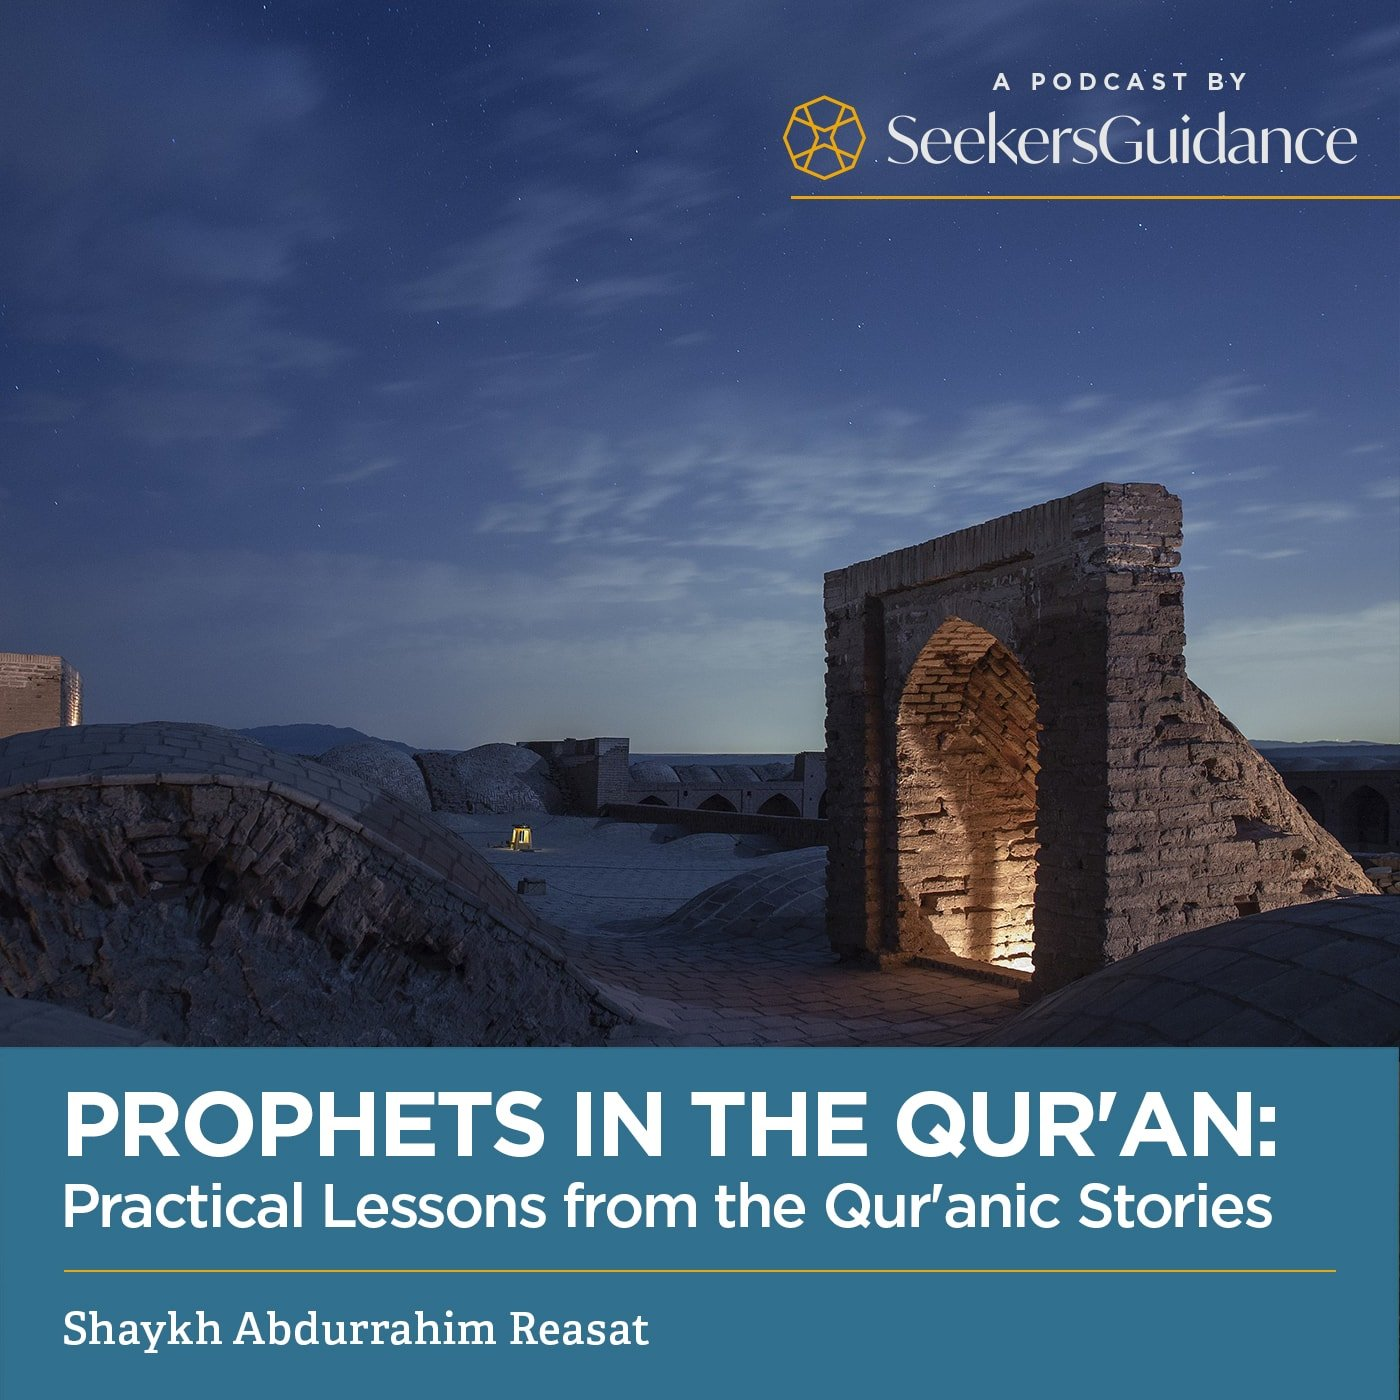 Prophets in the Qur'an: Practical Lessons from the Qur'anic Stories